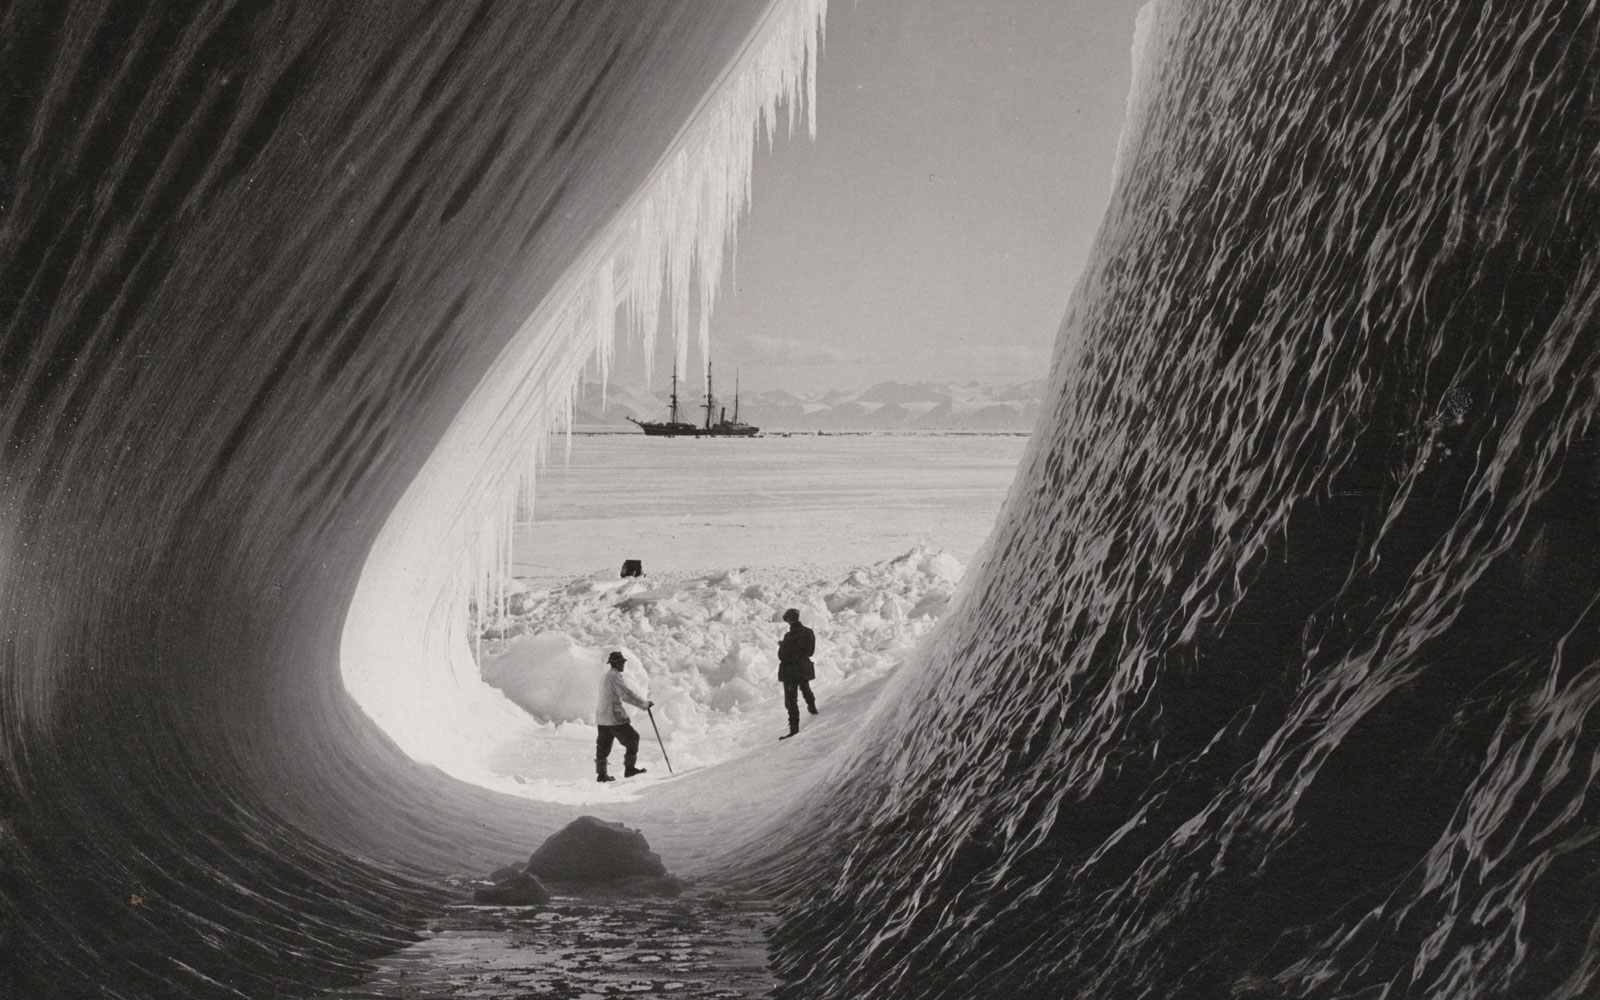 Grotto in an iceberg, photographed during the British Antarctic Expedition of 1911-1913.